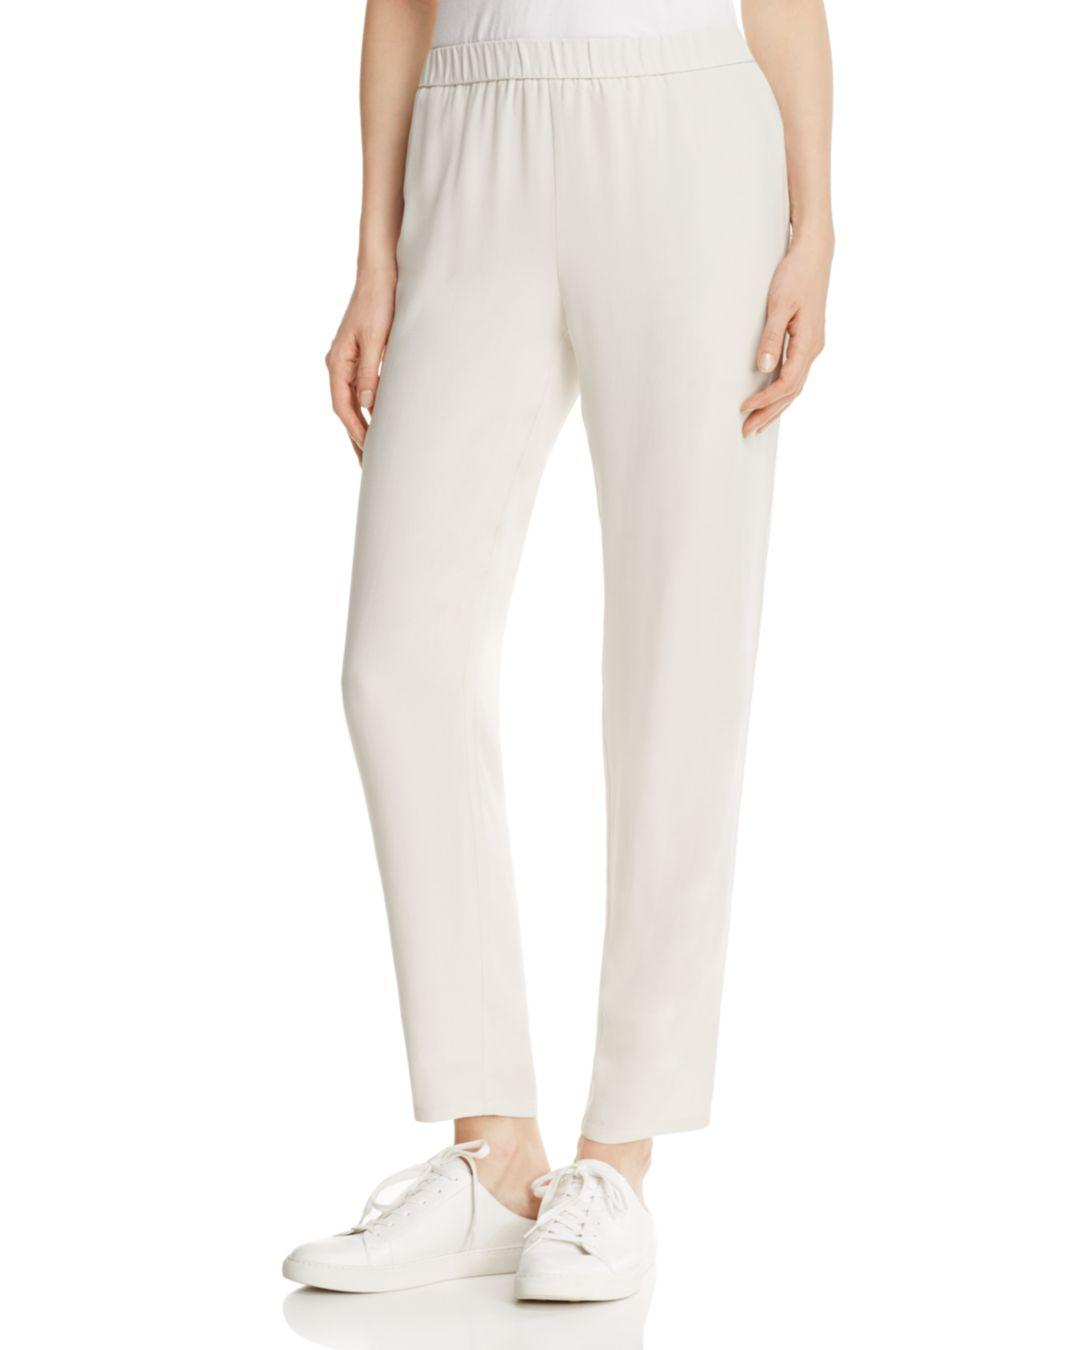 990f817e6fa Lyst - Eileen Fisher System Slouchy Silk Ankle Pants in Black - Save 7%